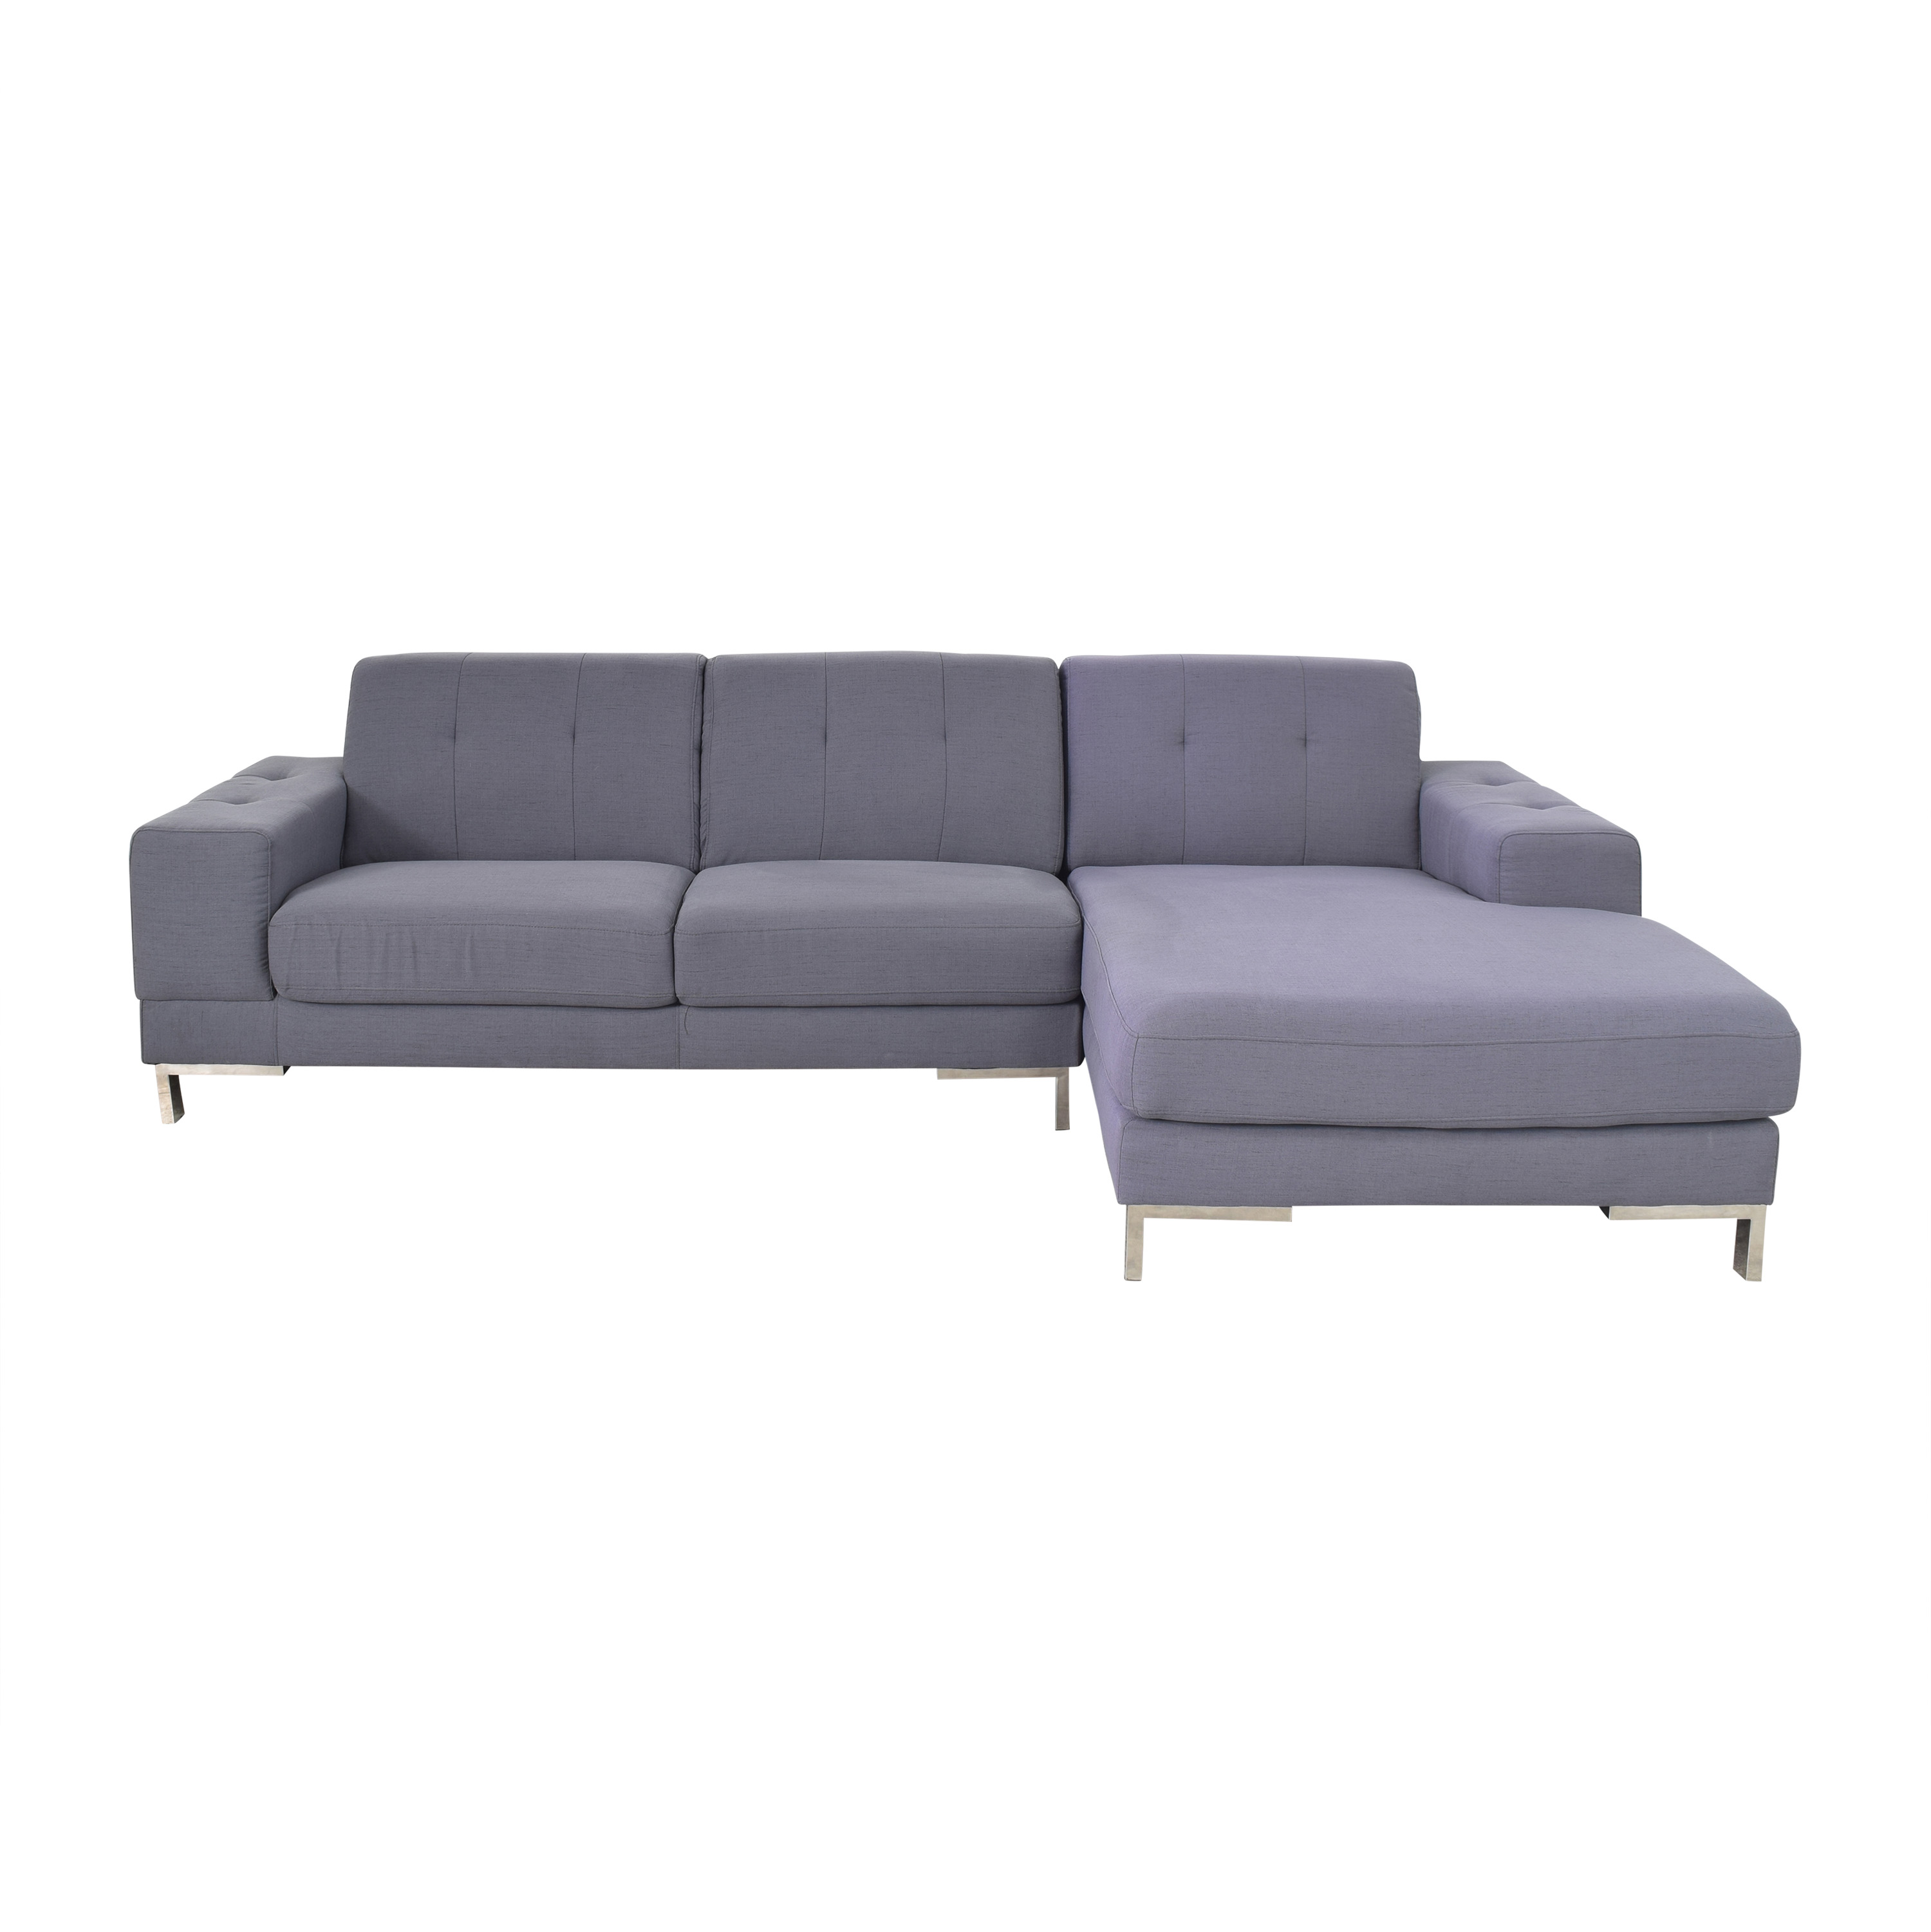 Overstock Overstock Halsted Tufted Chaise Sectional Sofa used